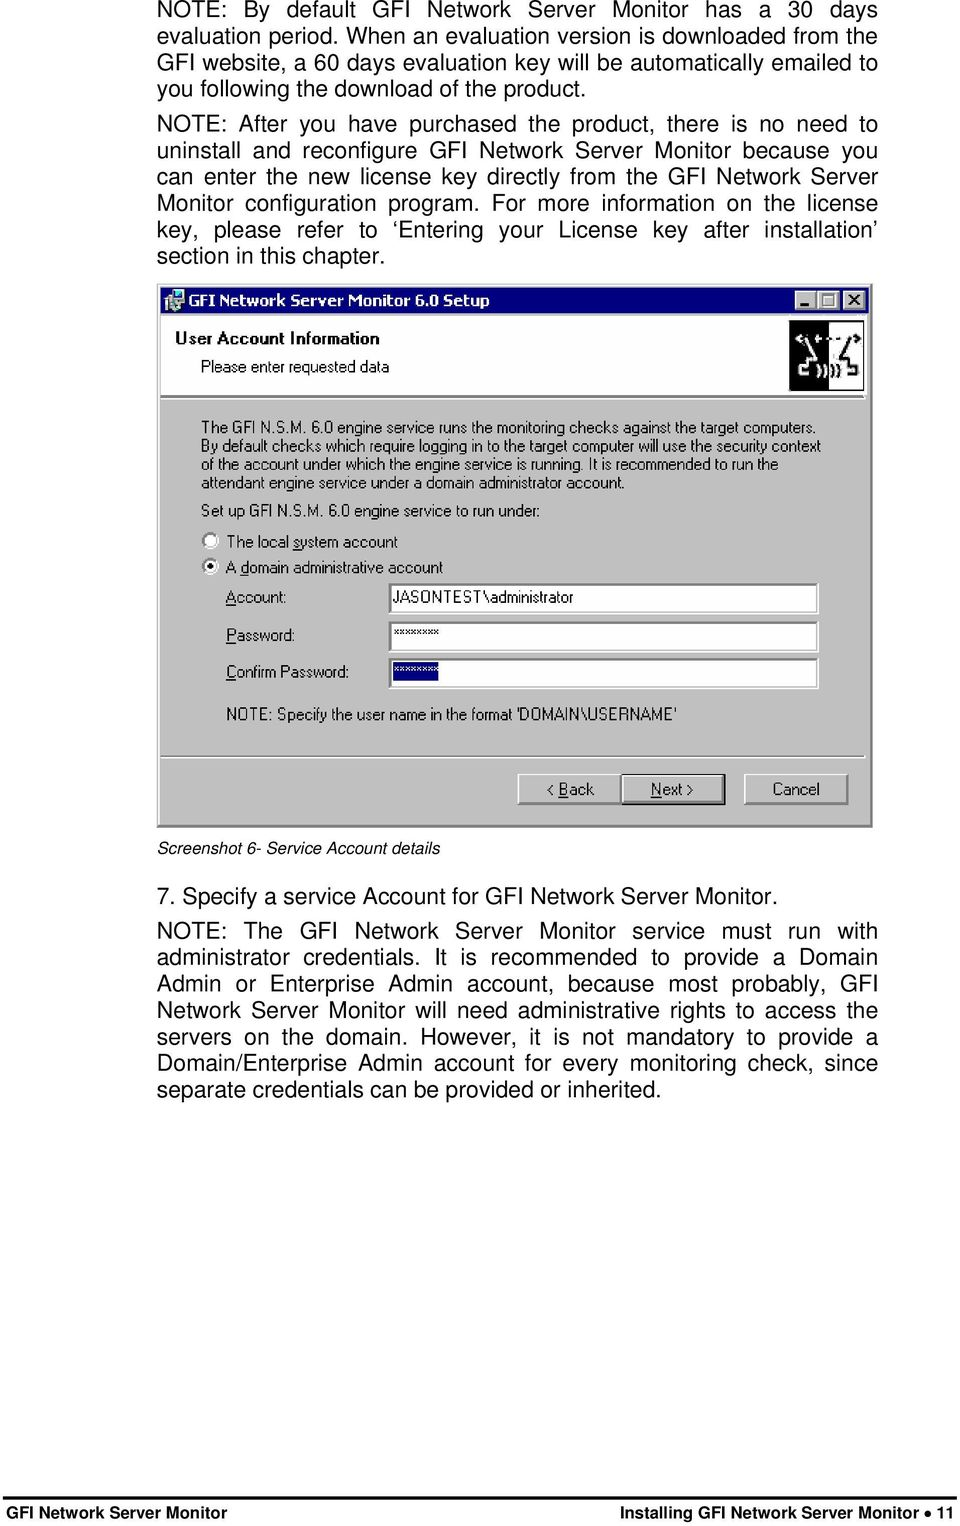 NOTE: After you have purchased the product, there is no need to uninstall and reconfigure GFI Network Server Monitor because you can enter the new license key directly from the GFI Network Server